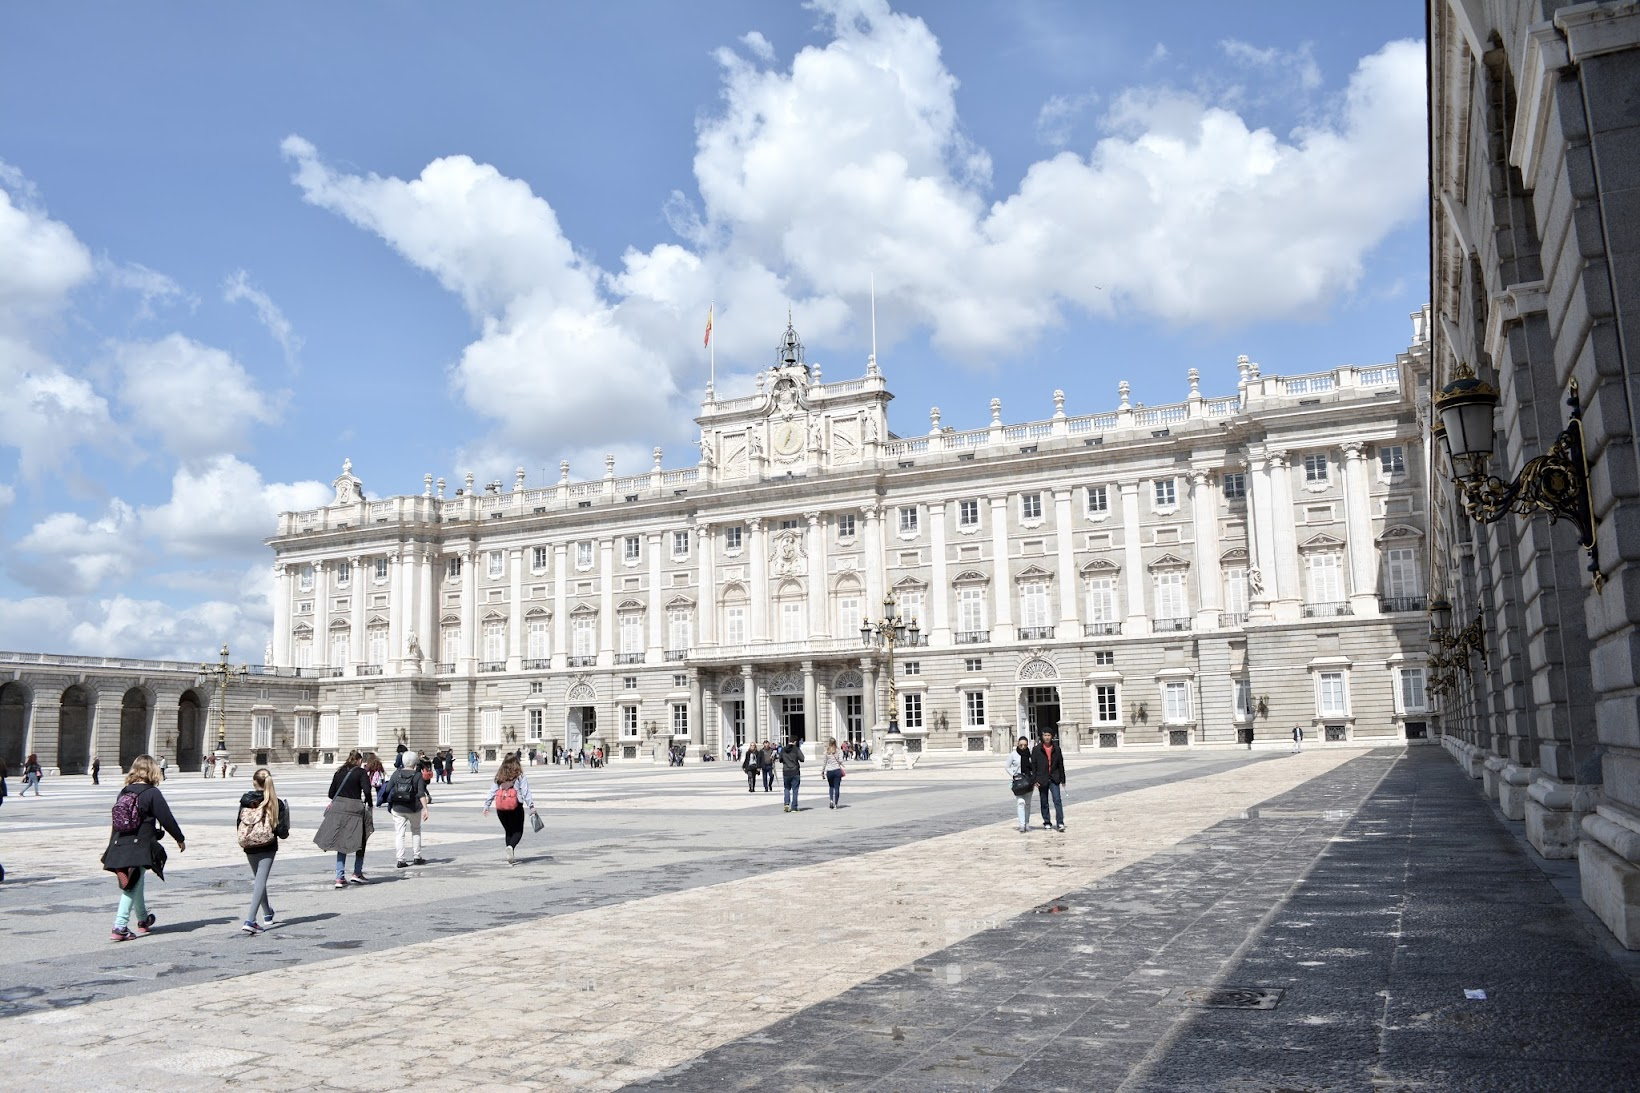 The Royal Palace of Madrid, El Palacio Real de Madrid, Visit Madrid, Madrid sights